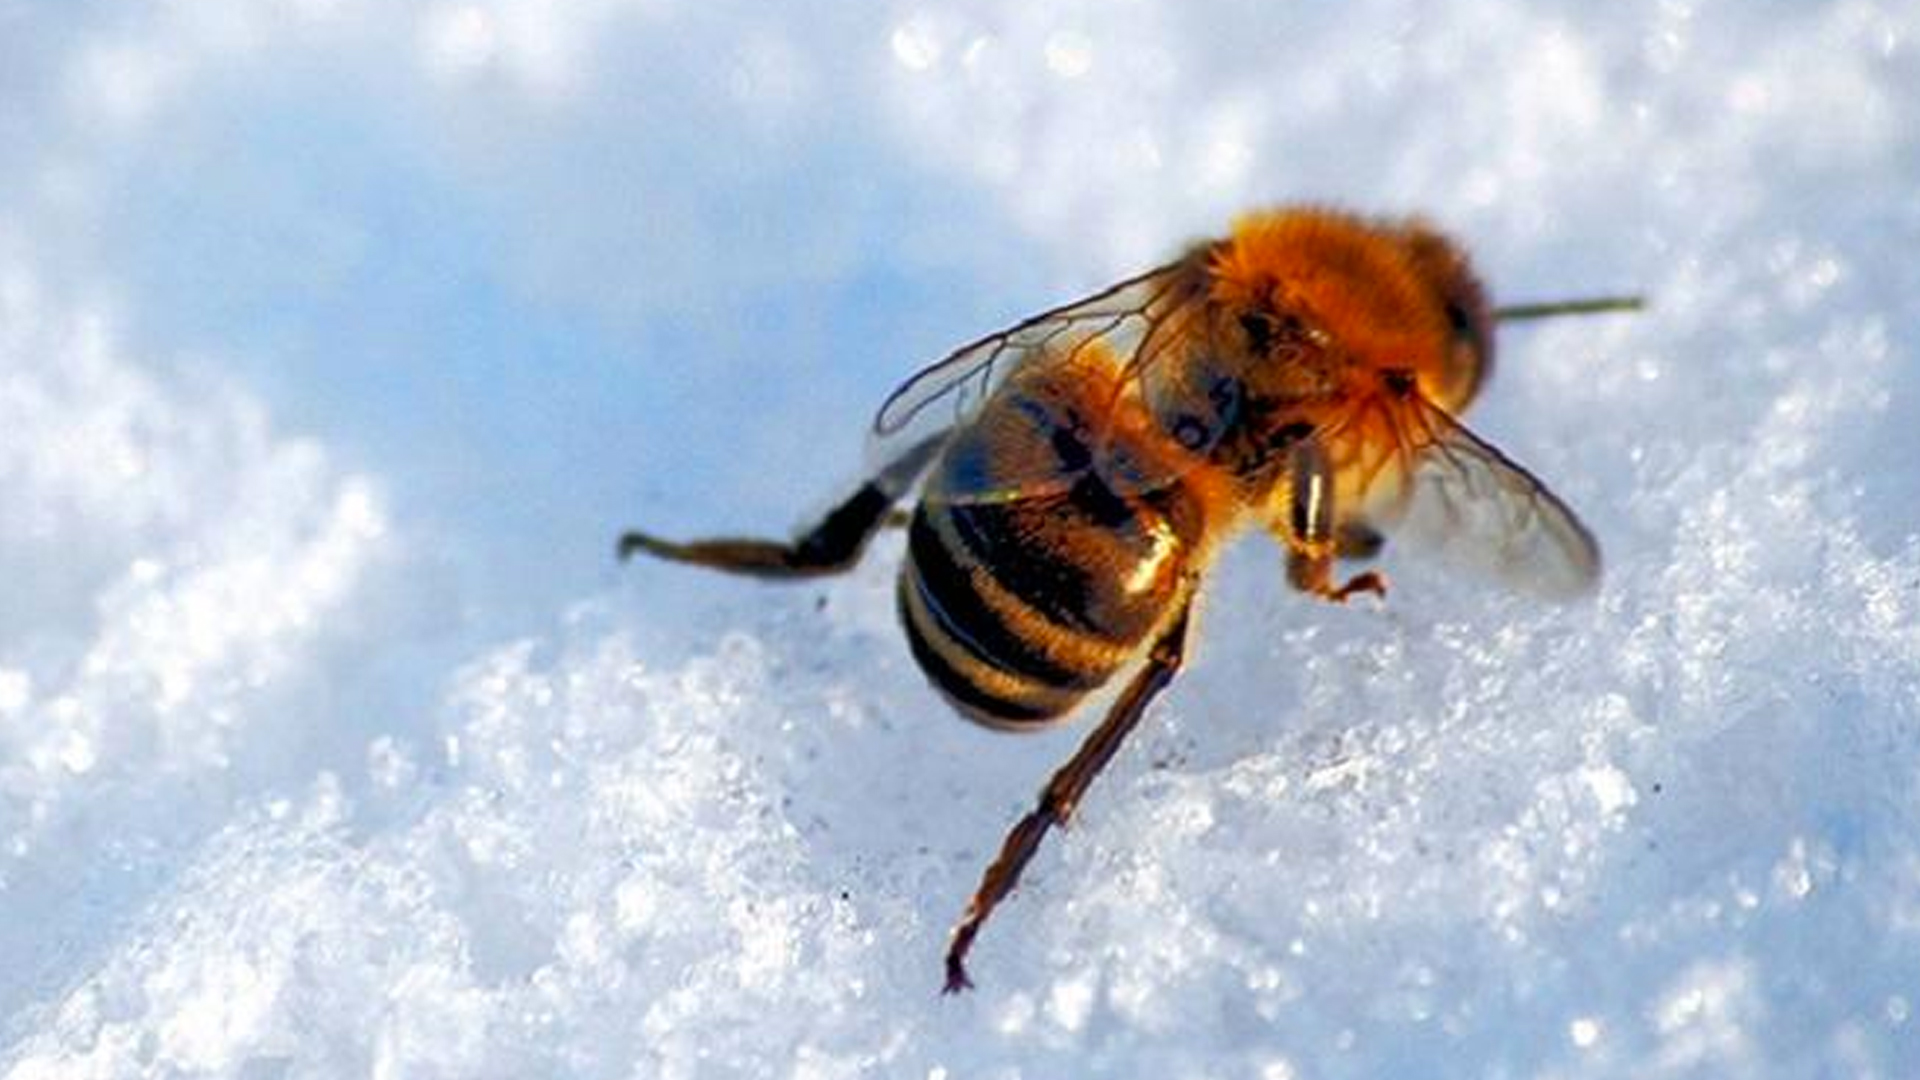 Honeybee on Snow